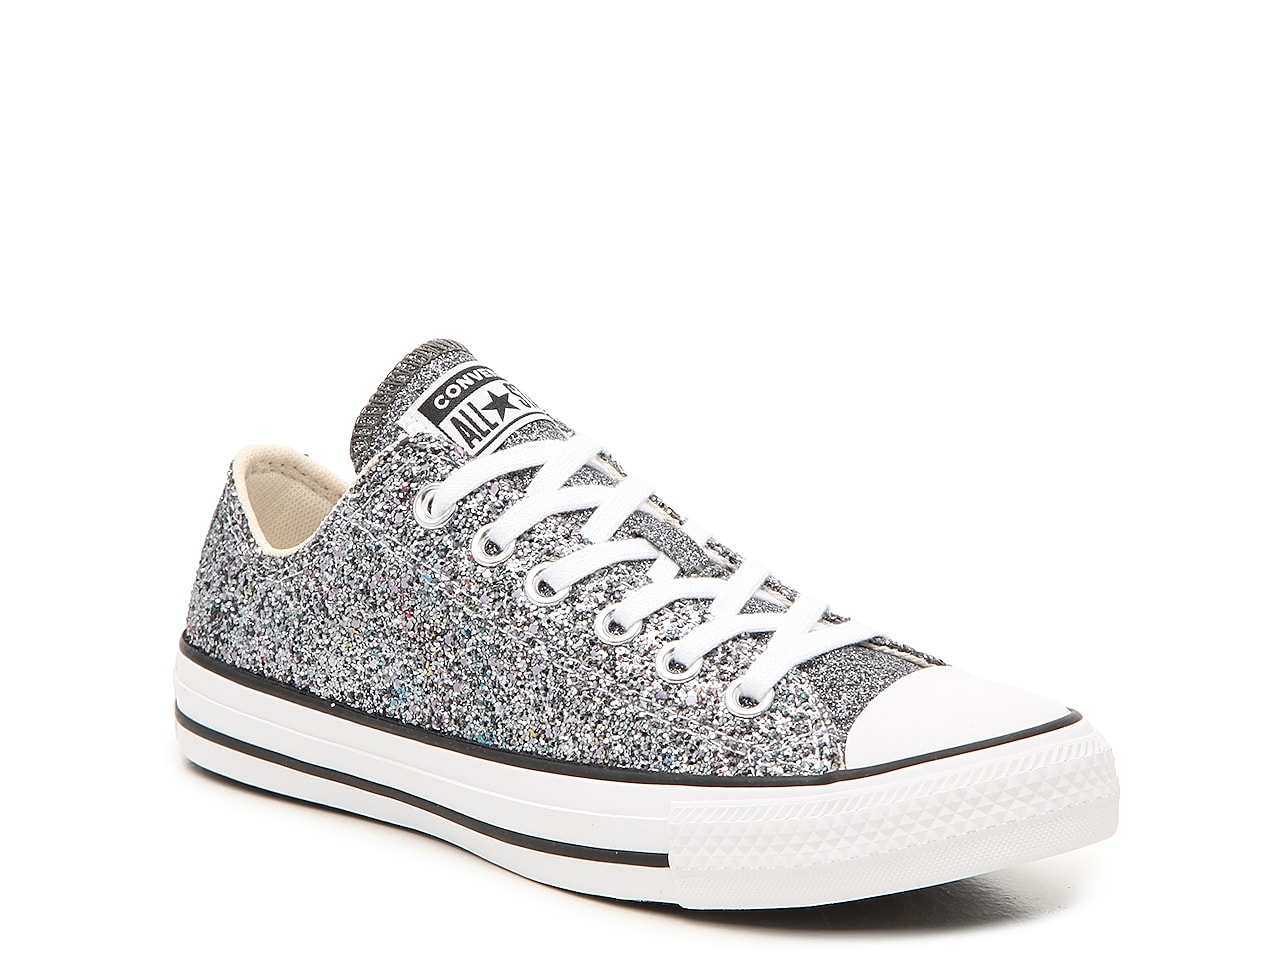 bedazzled chucks trainers